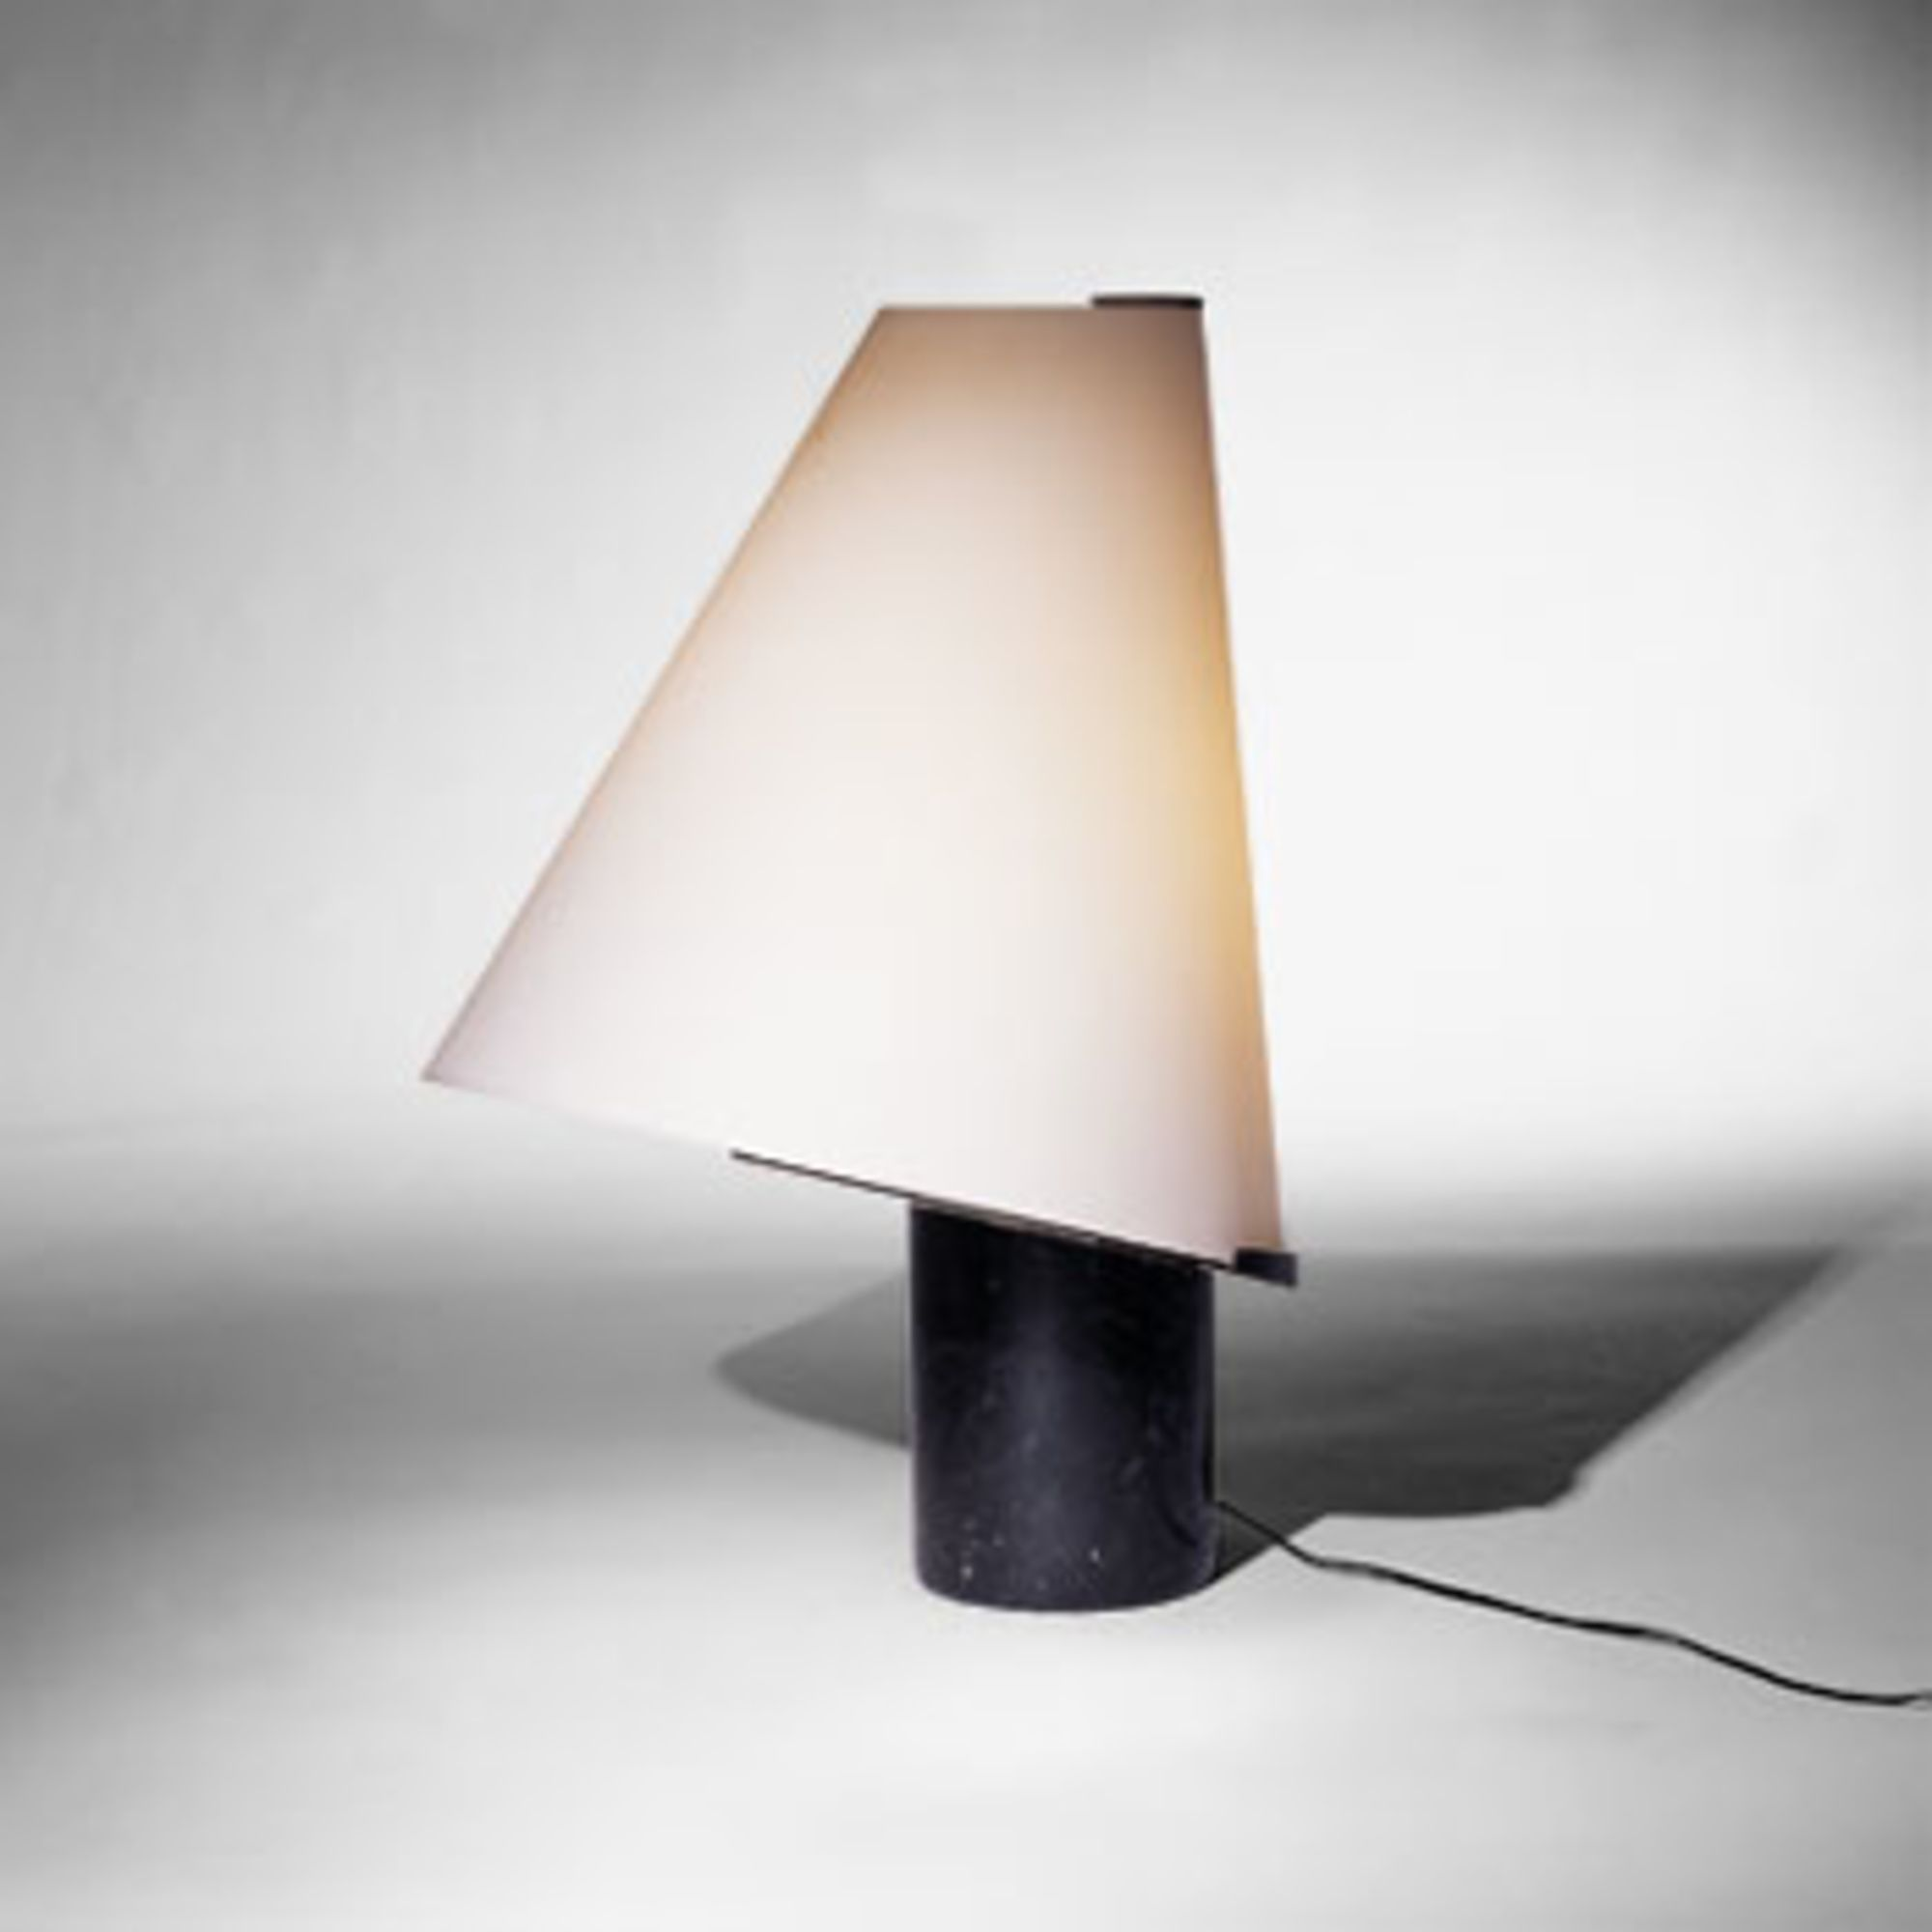 Massimo Vignelli Lamp Italy 1960s Marble Glass Lamp Wall Lamp Glass Lamp